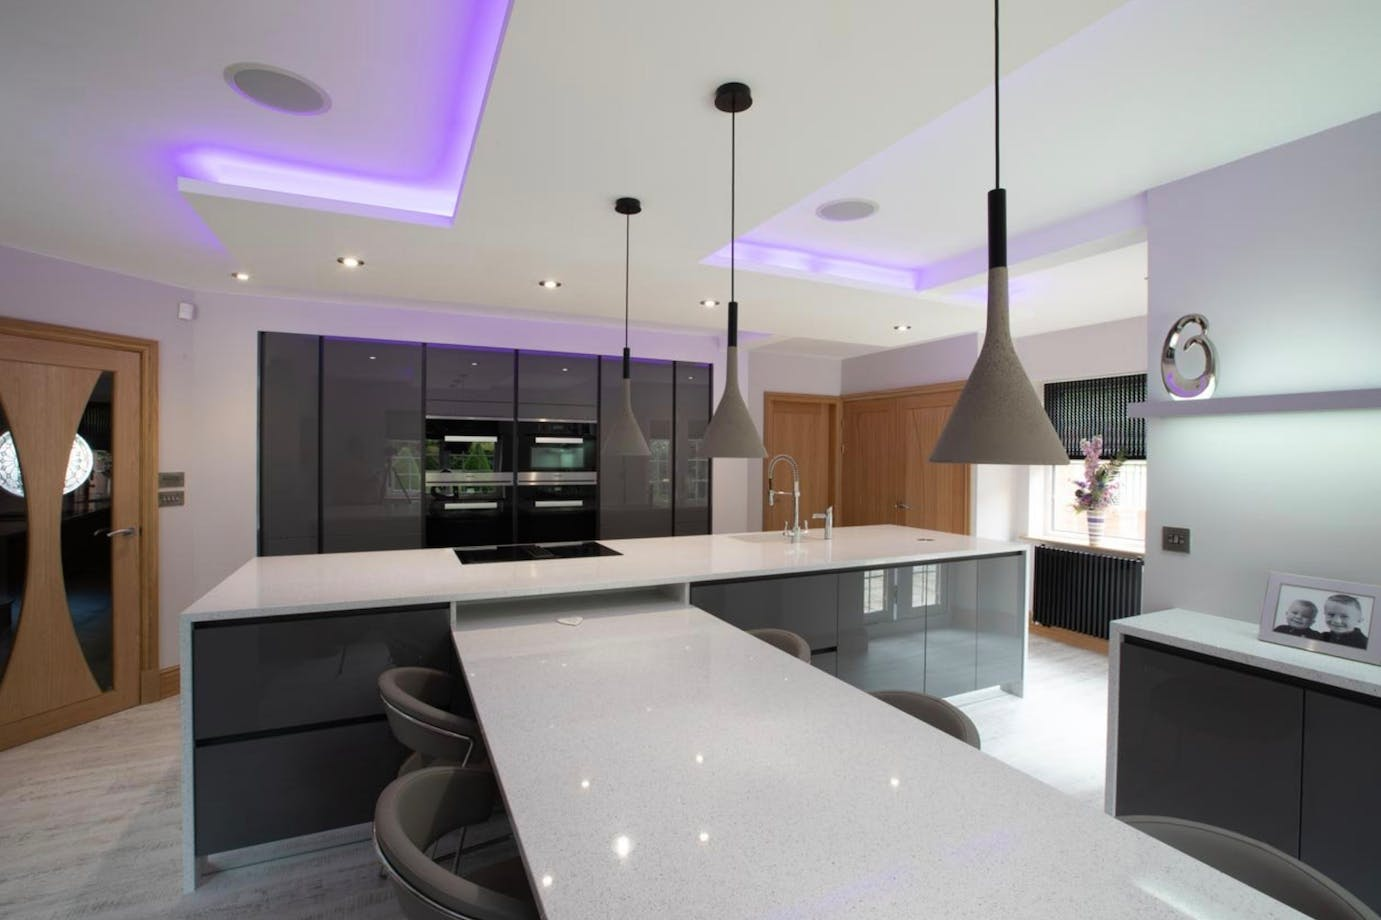 Silestone - Concept Interiors - Residential Kitchen Blanco